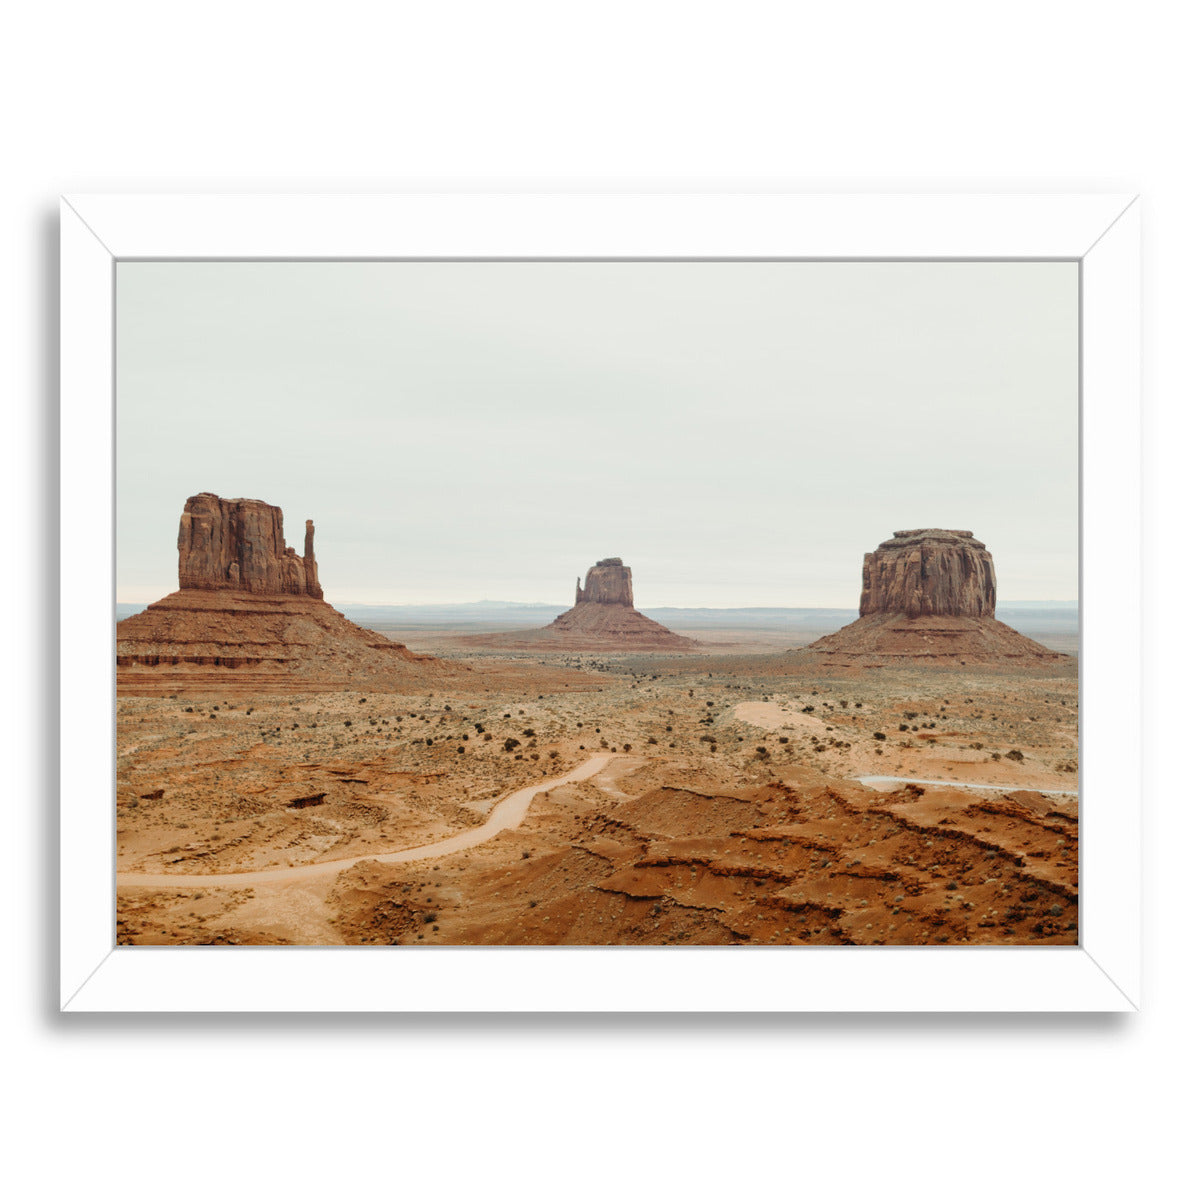 "Monument Valley By Natalie Allen - White Framed Print, Wall Art, Natalie Allen, 8"" x 10"""